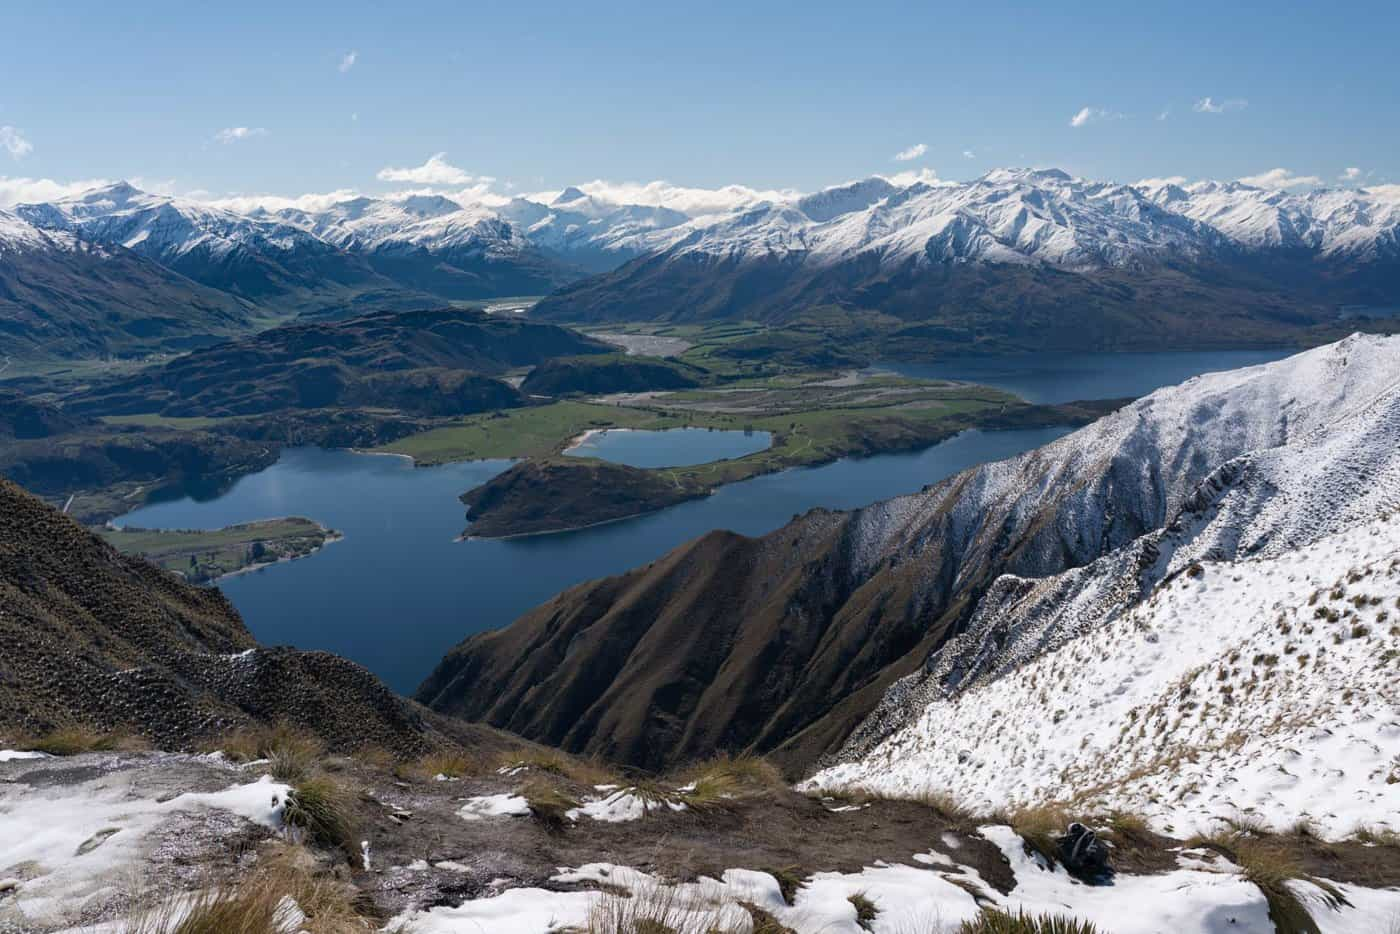 Expect lots of snowy landscapes on a July visit to New Zealand.